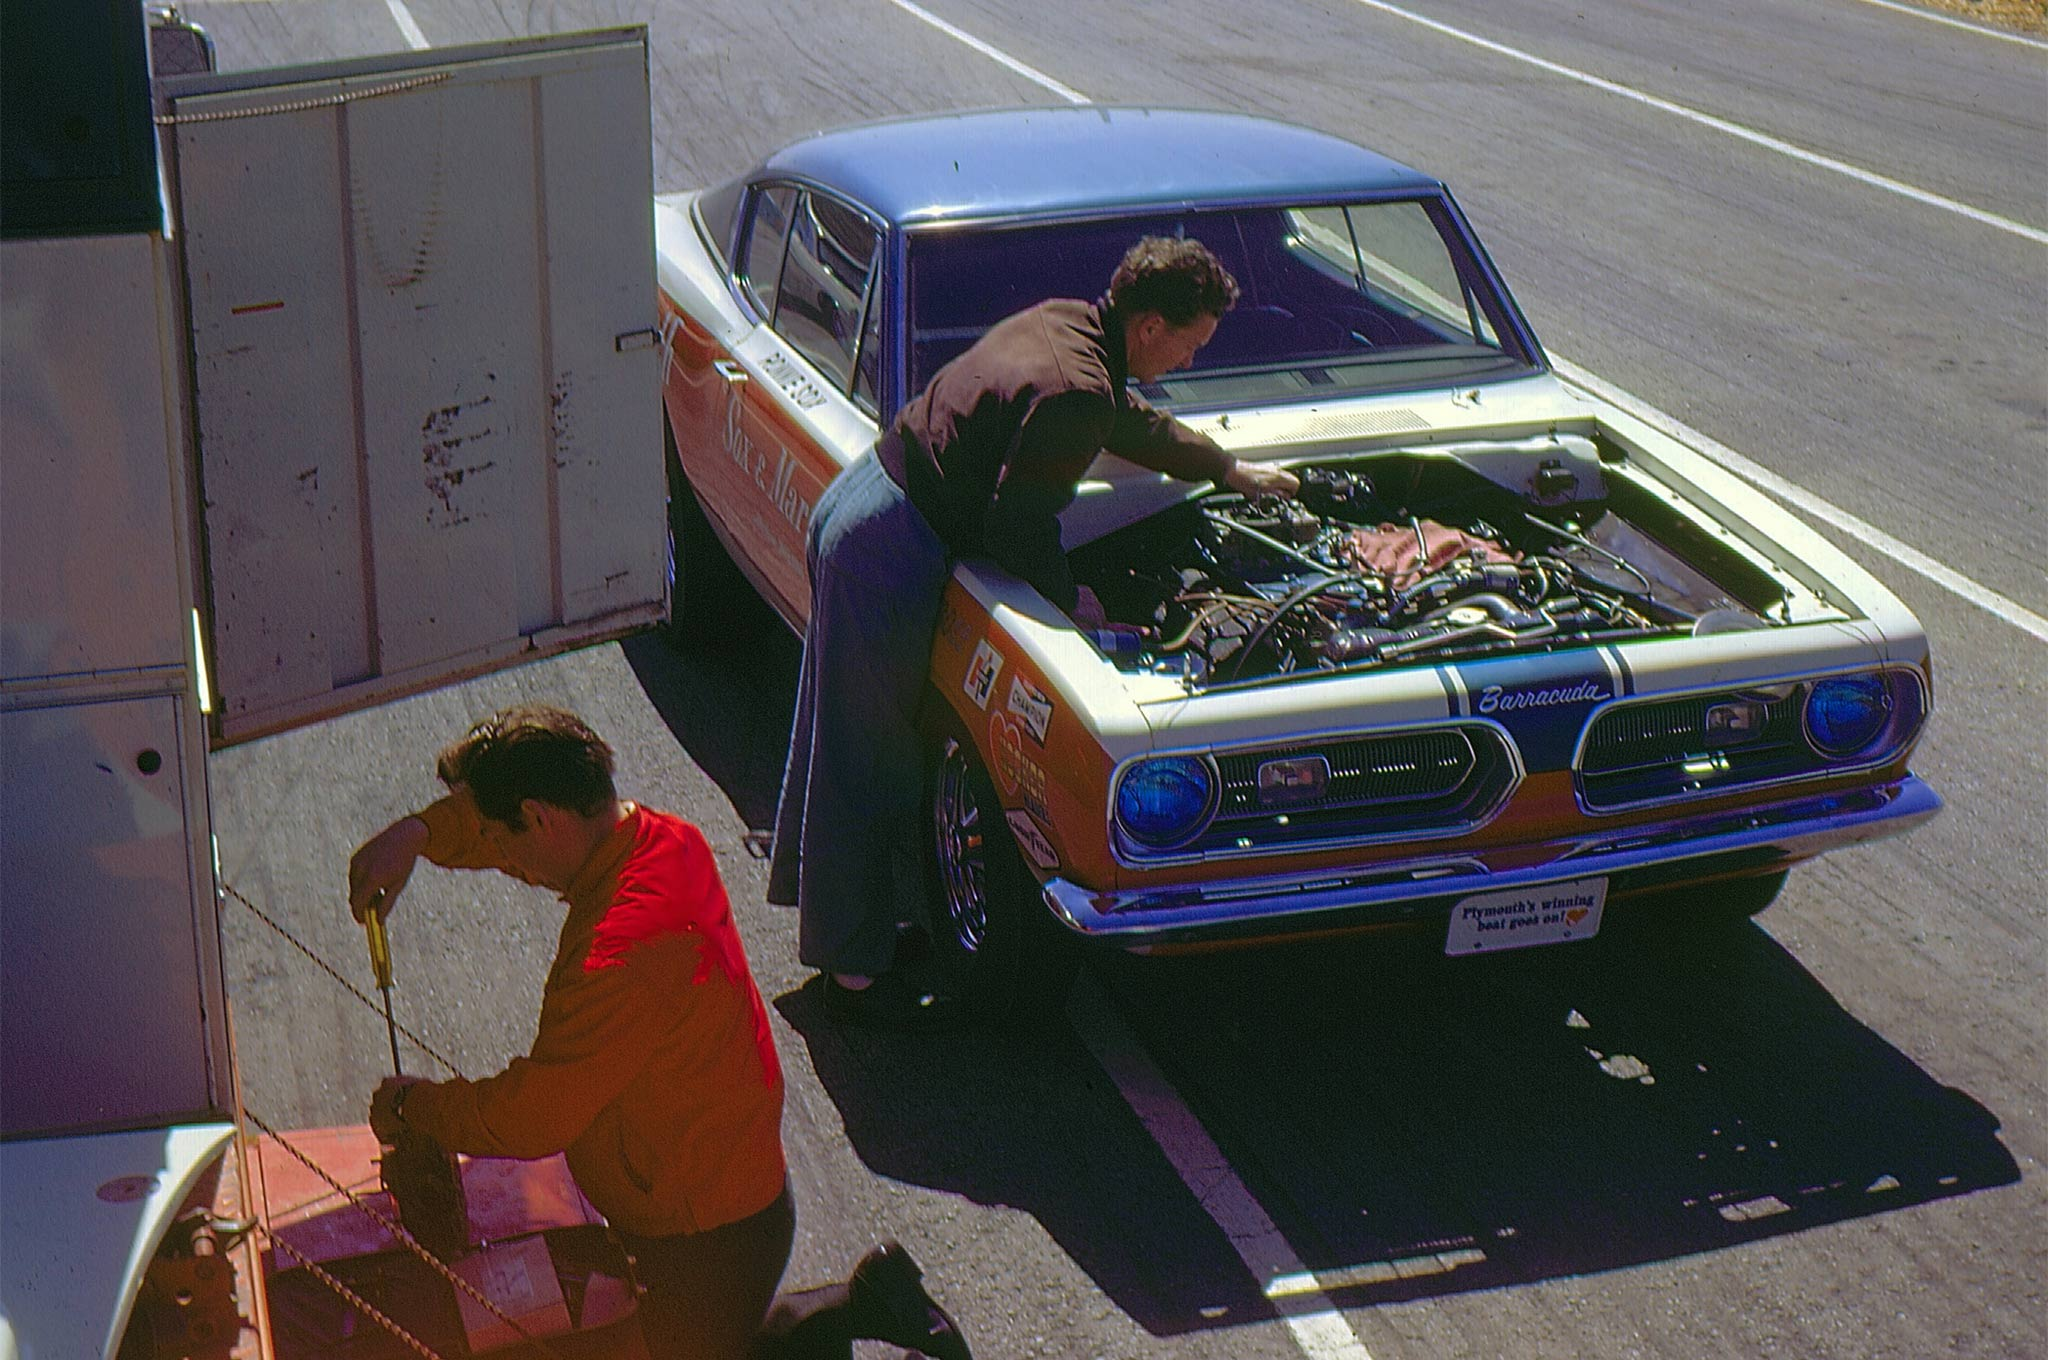 We are at Cecil County. This was the very first track test of the Sox & Martin Barracuda in late April 1968. Jake King is over the motor and Chrysler fuel-systems specialist John Bauman is setting up one of the Holleys.